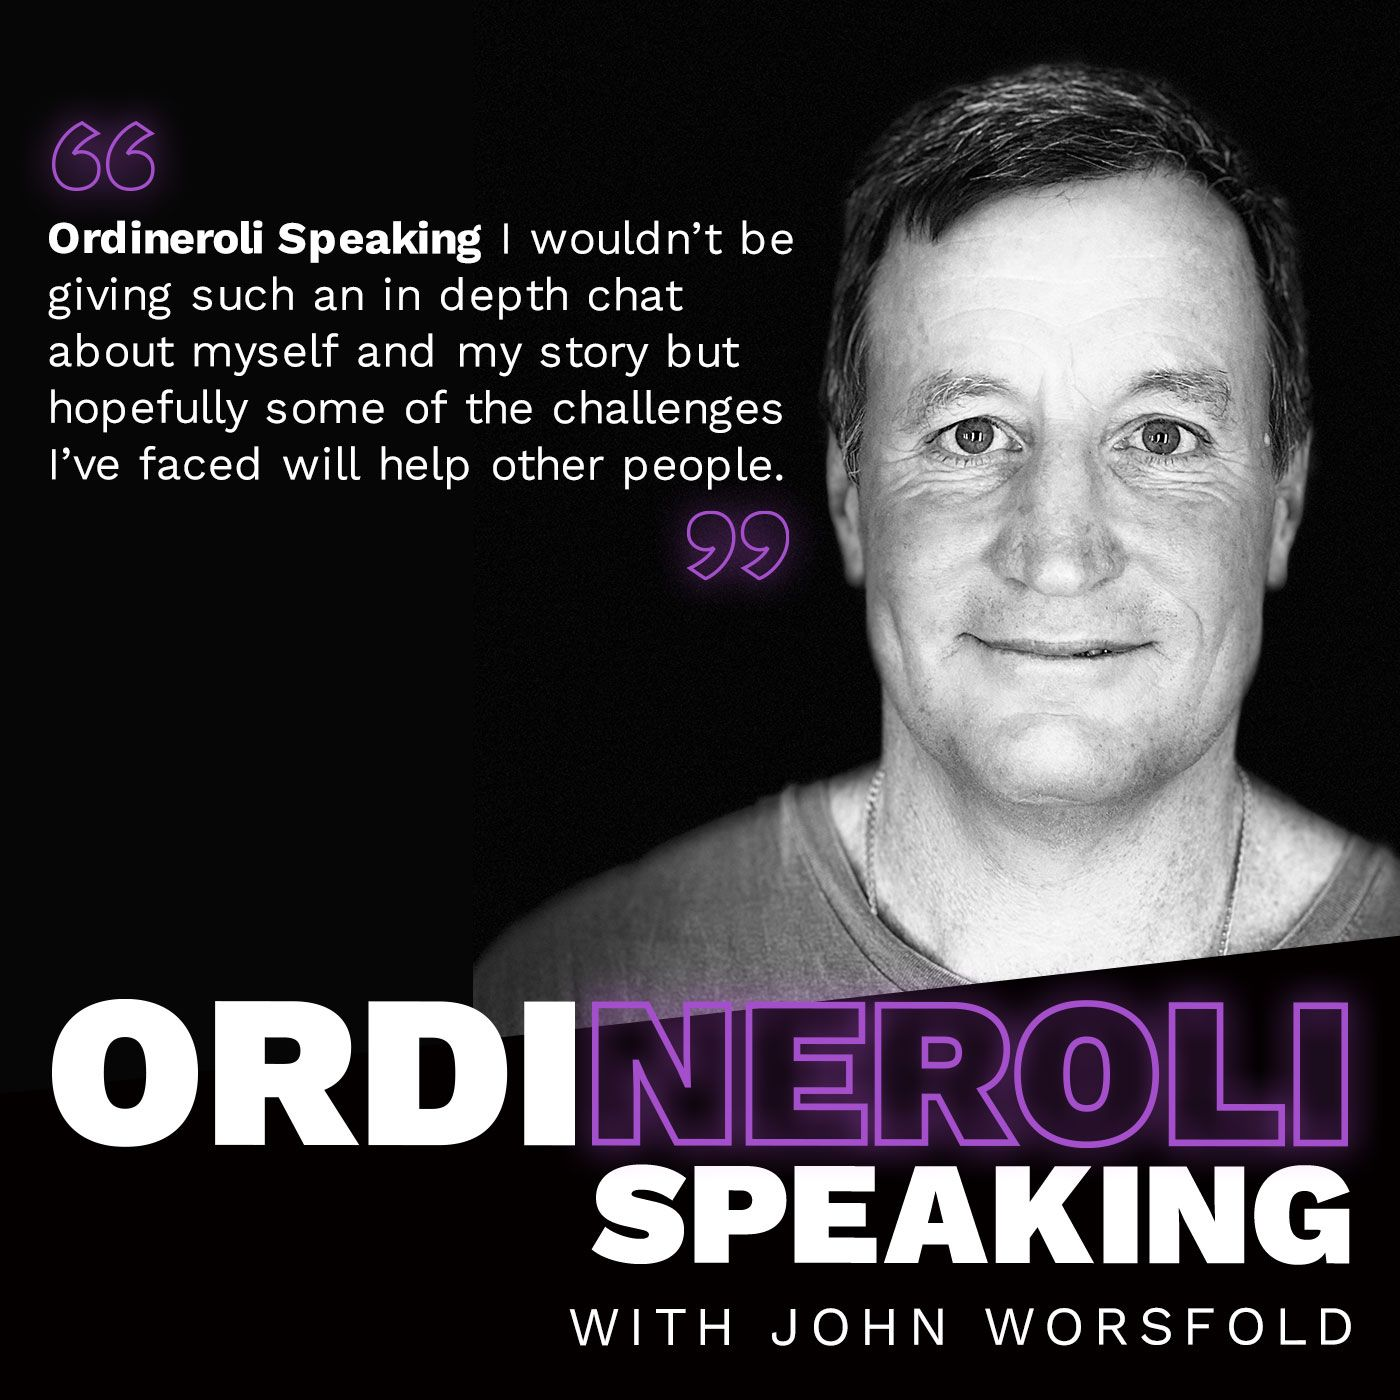 John Worsfold - Ordineroli Speaking